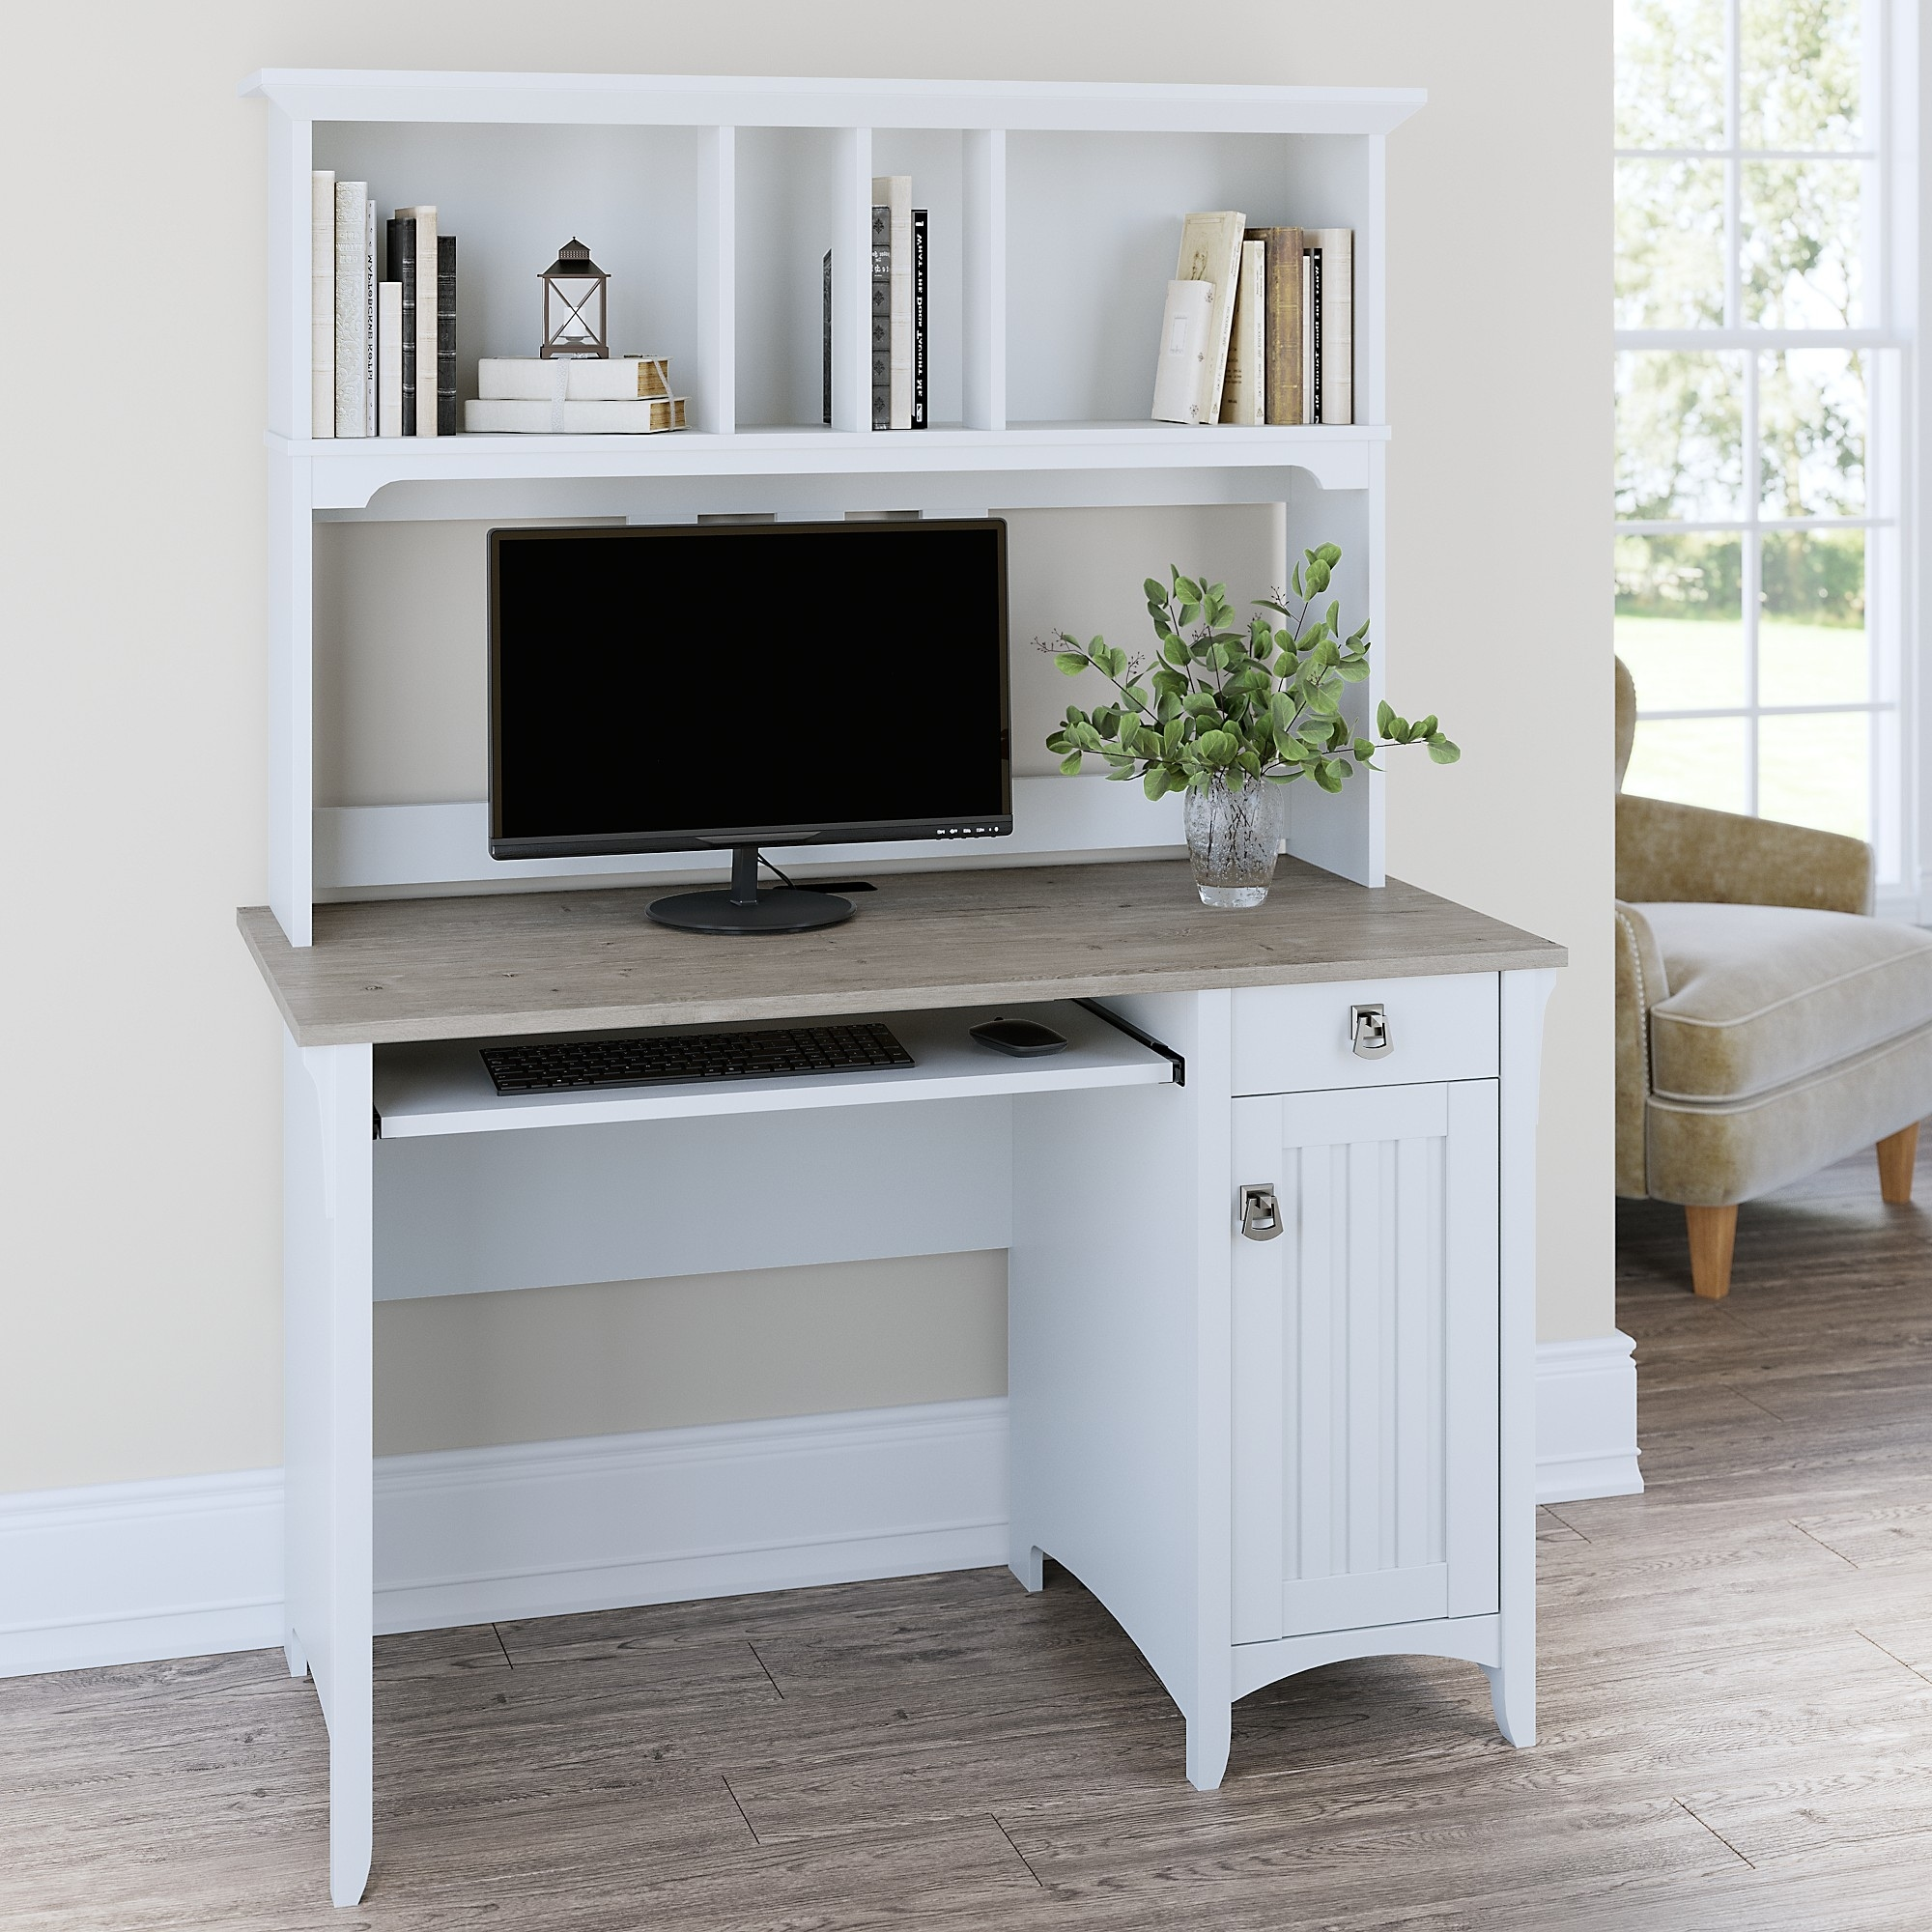 The Gray Barn Lowbridge Mission Style Desk With Hutch Overstock 20132370